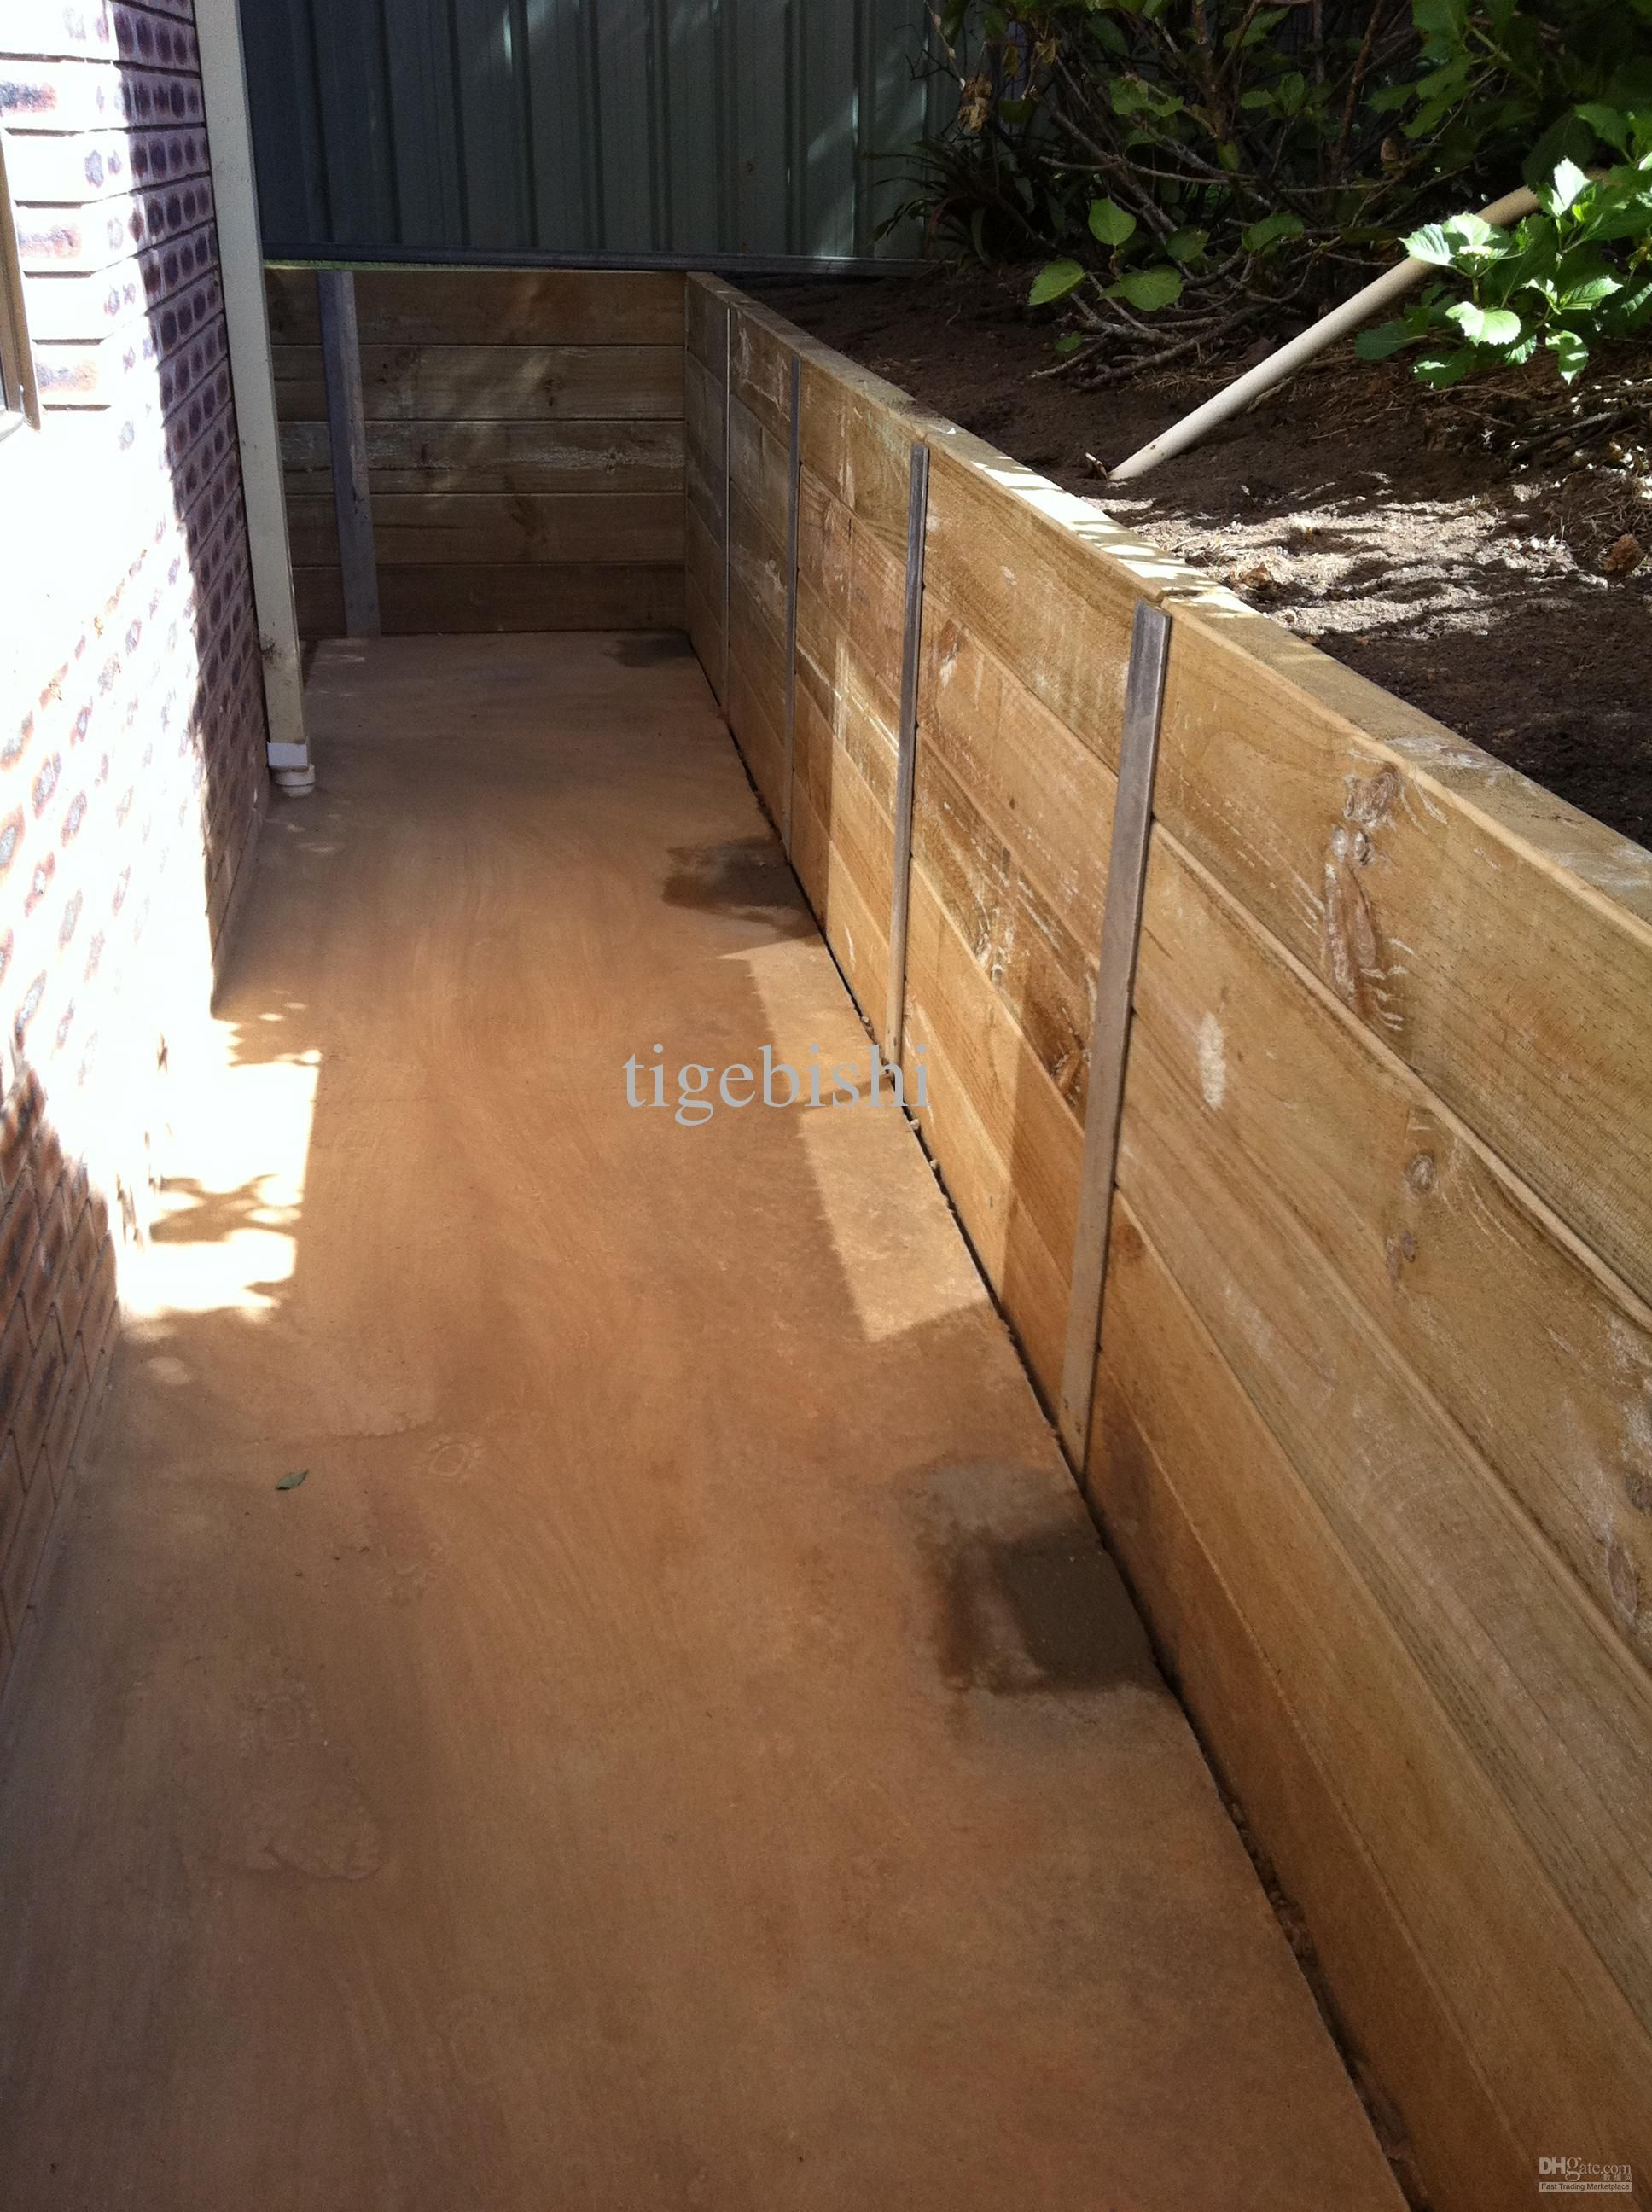 Walkway To Side Of Building With Timber Retaining Wall Espaces De Vie Exterieurs Amenagement Jardin Barriere Jardin